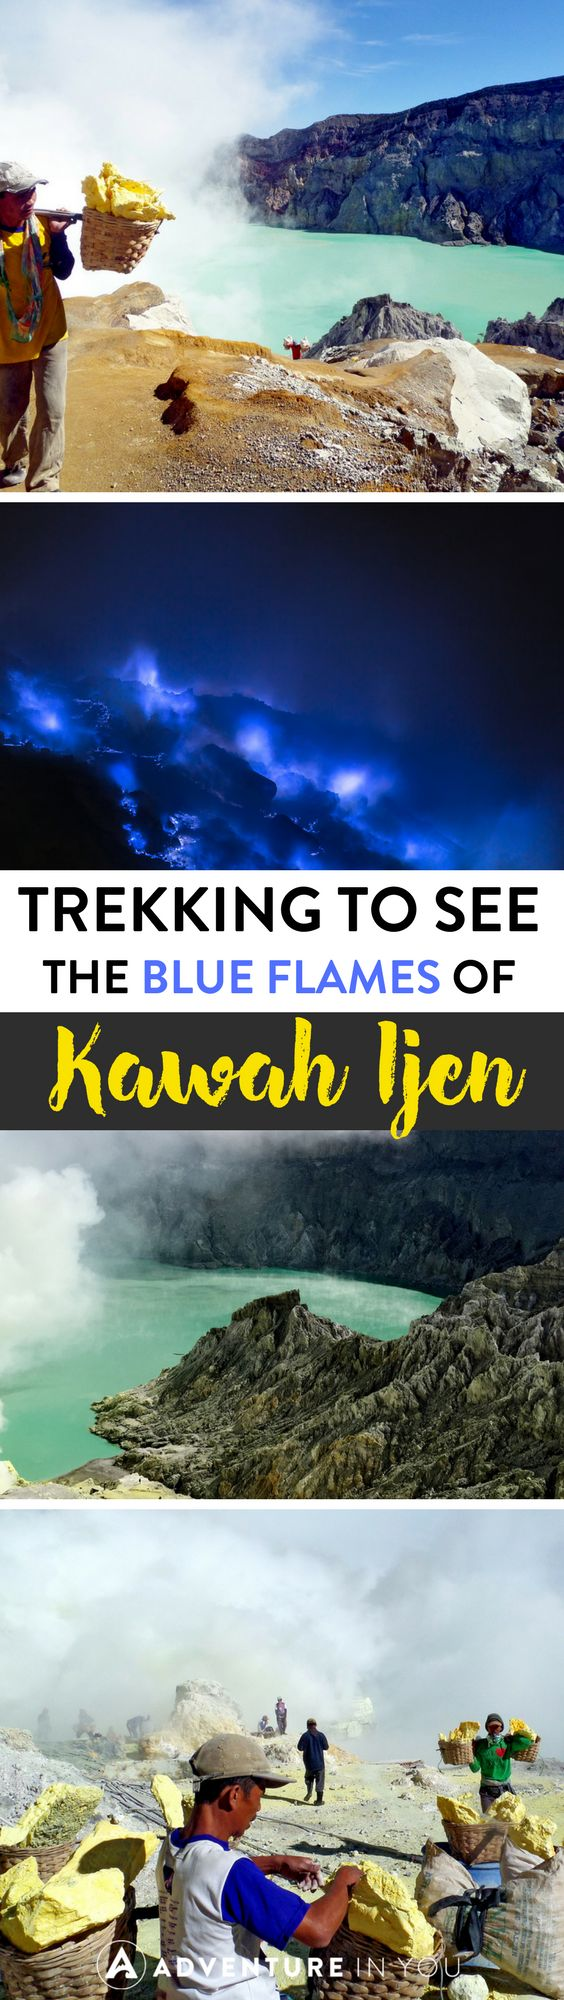 Kawah Ijen, Indonesia | Planning to see the blue flames of Kawah Ijen? Check out our complete guide and tips on how to make the most of this experience.